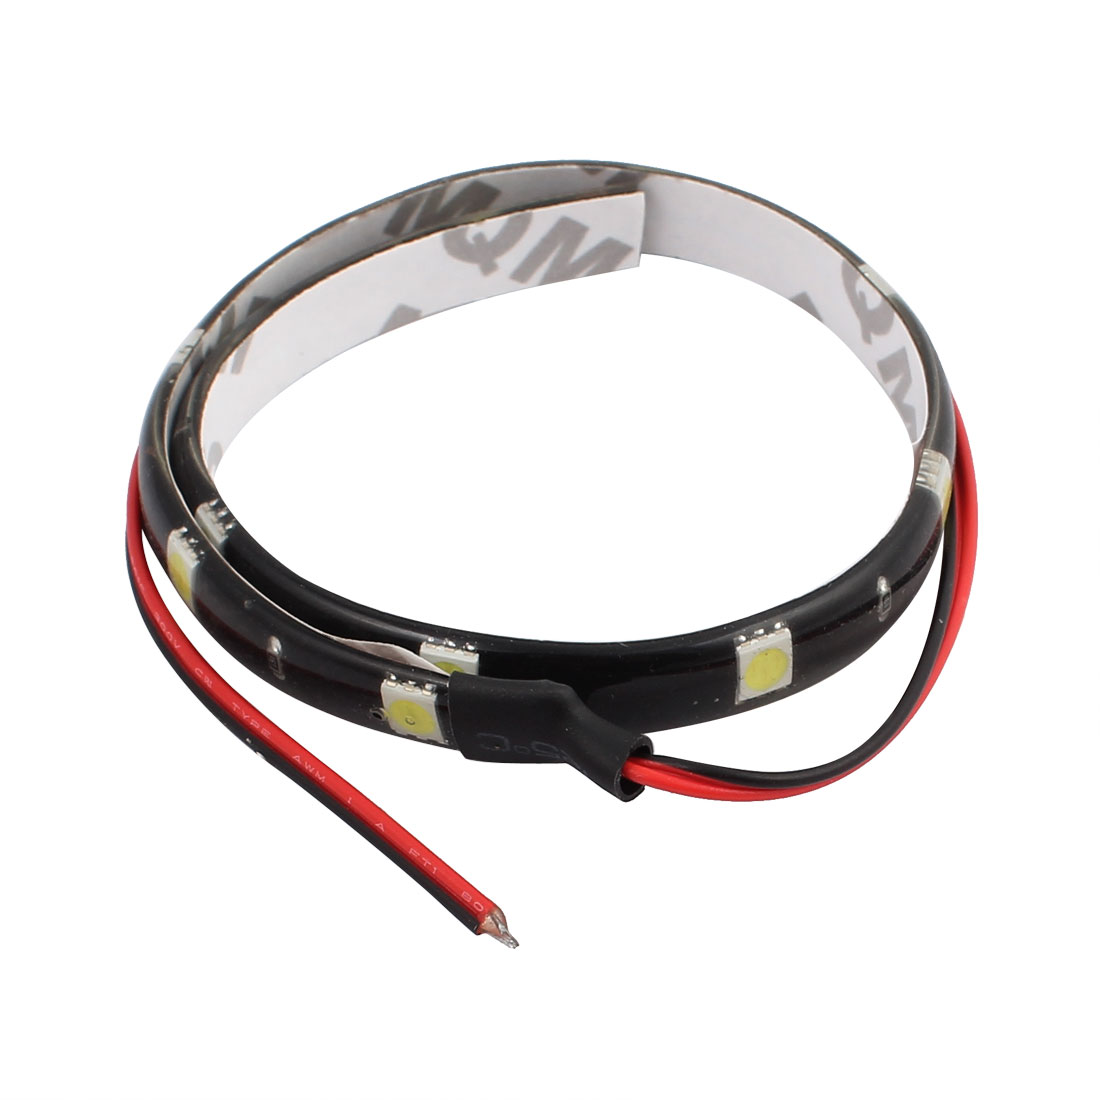 60CM 12V RGB 50mm x 50mm White LED Strip Light For Motorcycle or Car decorative lights